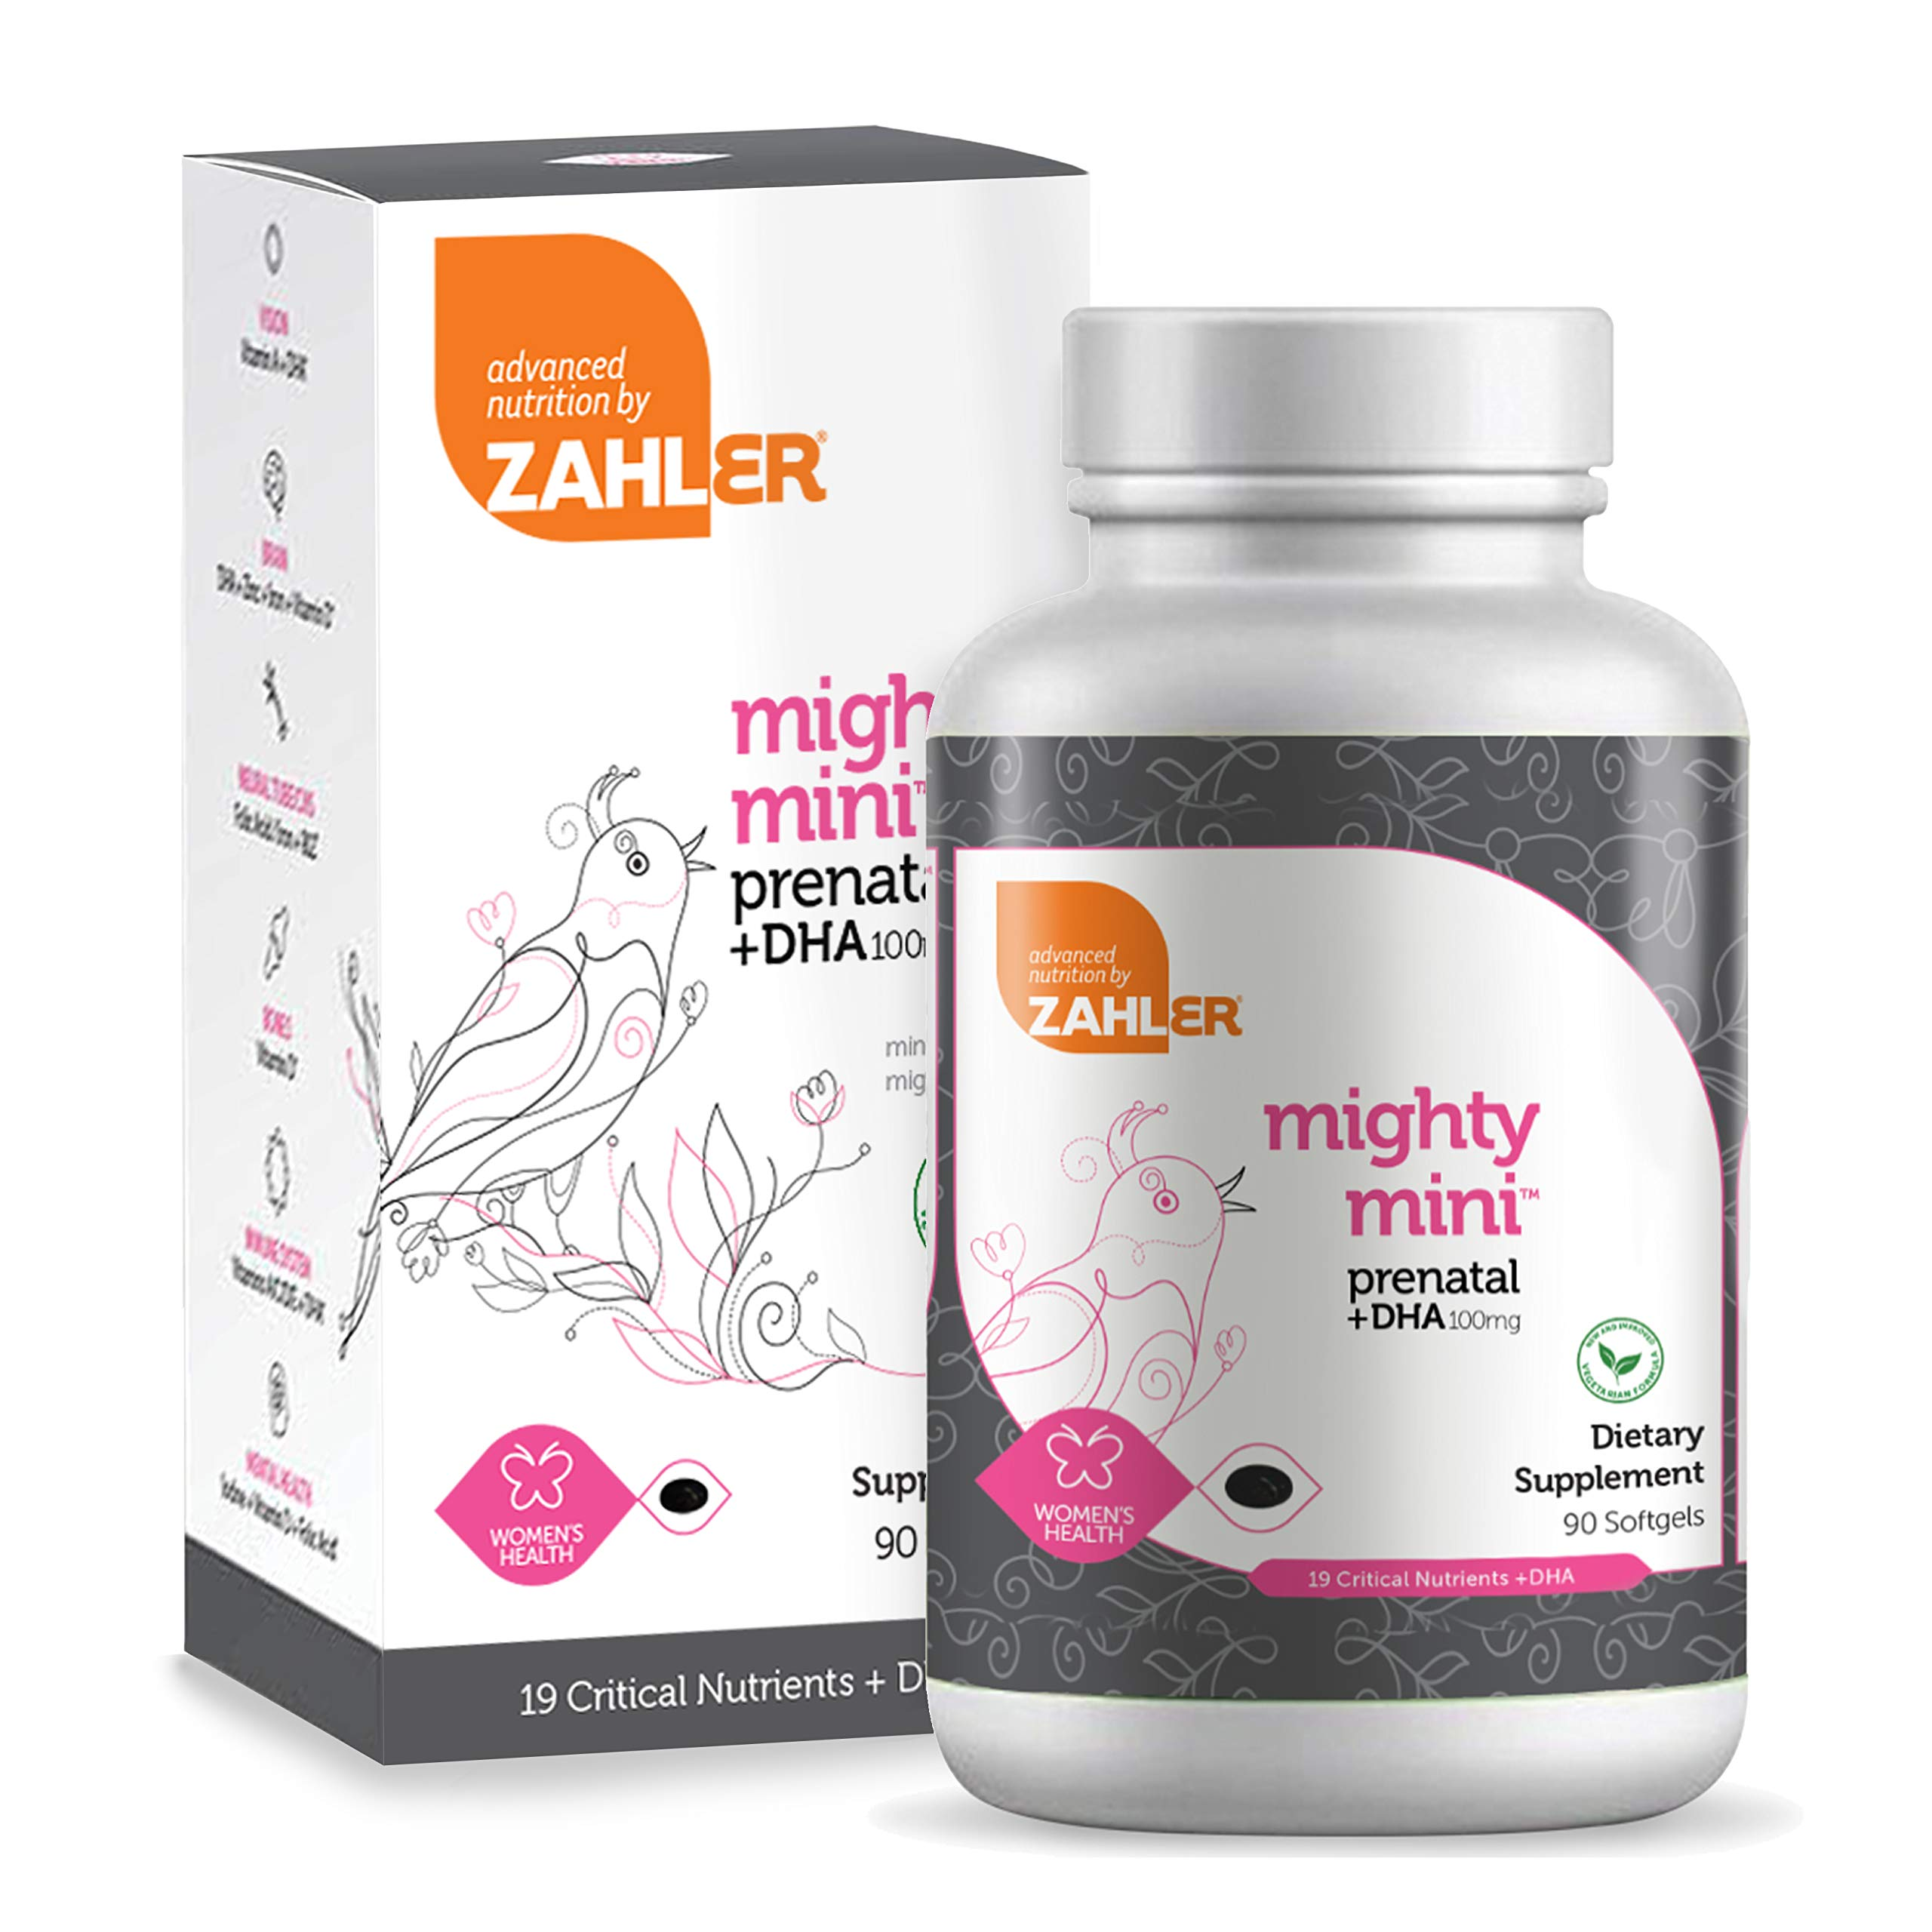 Zahler Mighty Mini Prenatal DHA, One a Day Complete Prenatal Vitamins for Mother and Child, Prenatal with DHA Supports Brain Development in Babies, Certified Kosher, 90 Softgels by Zahler